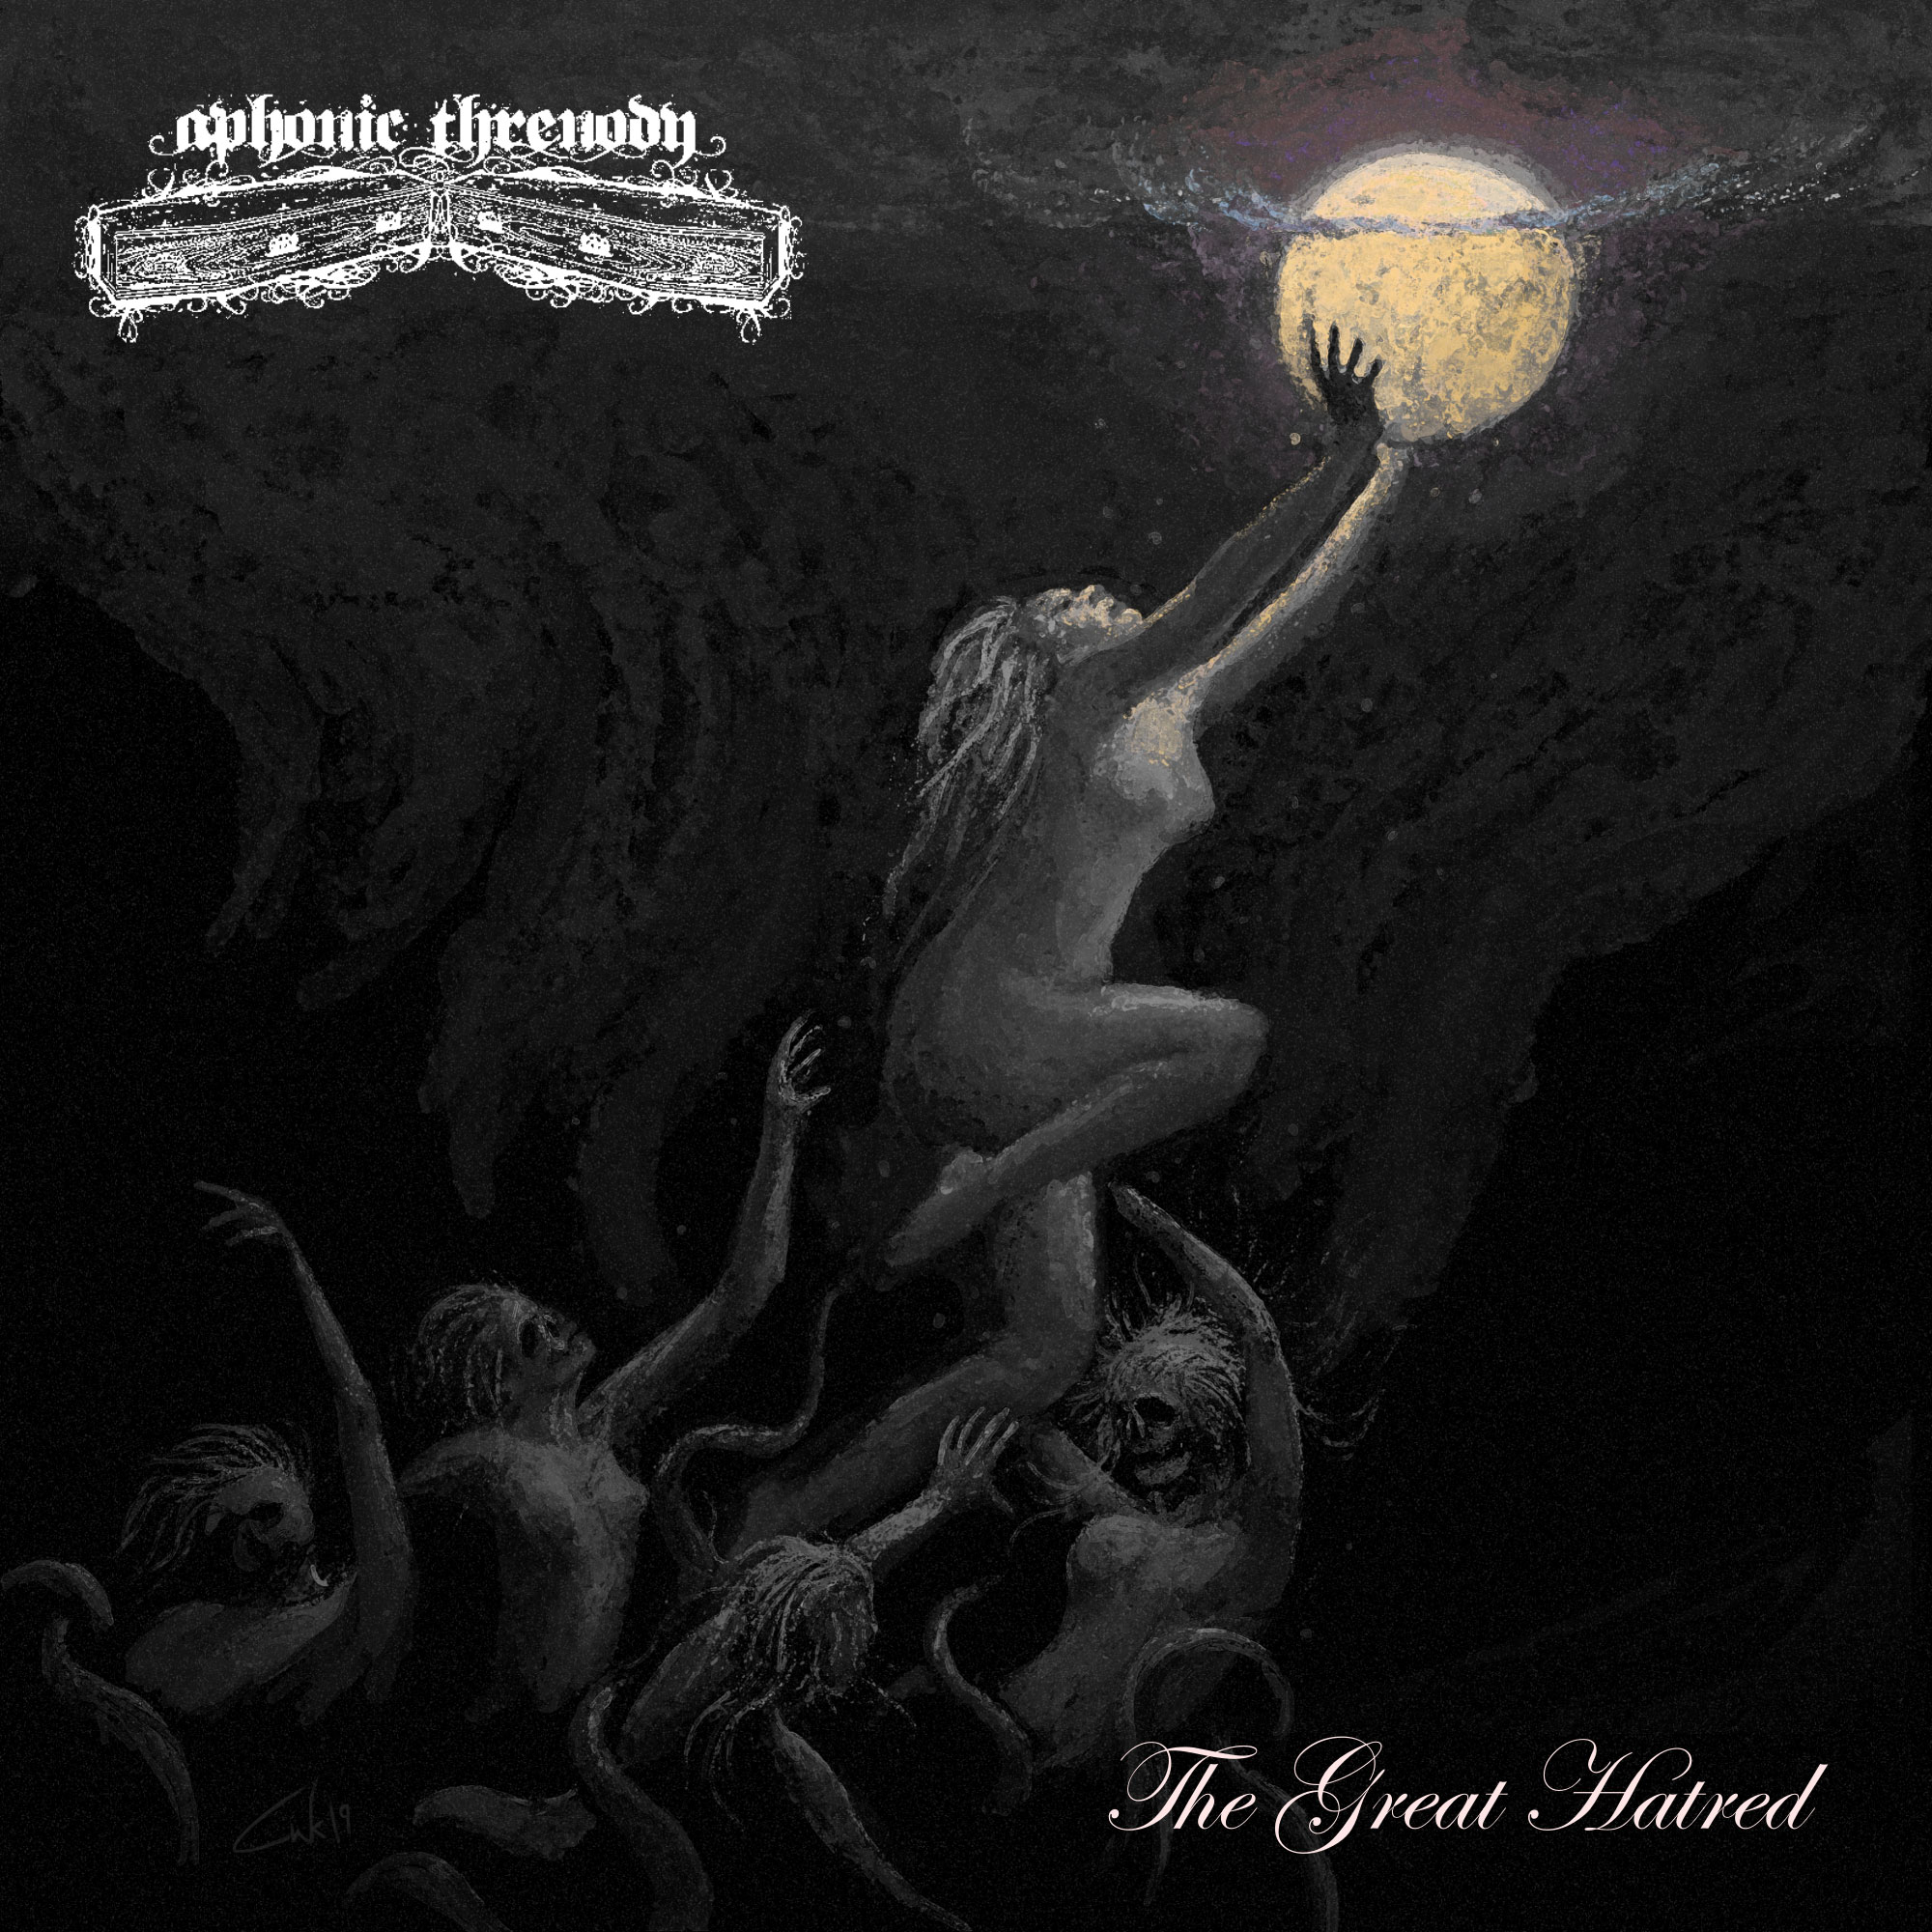 aphonic threnody the great hatred